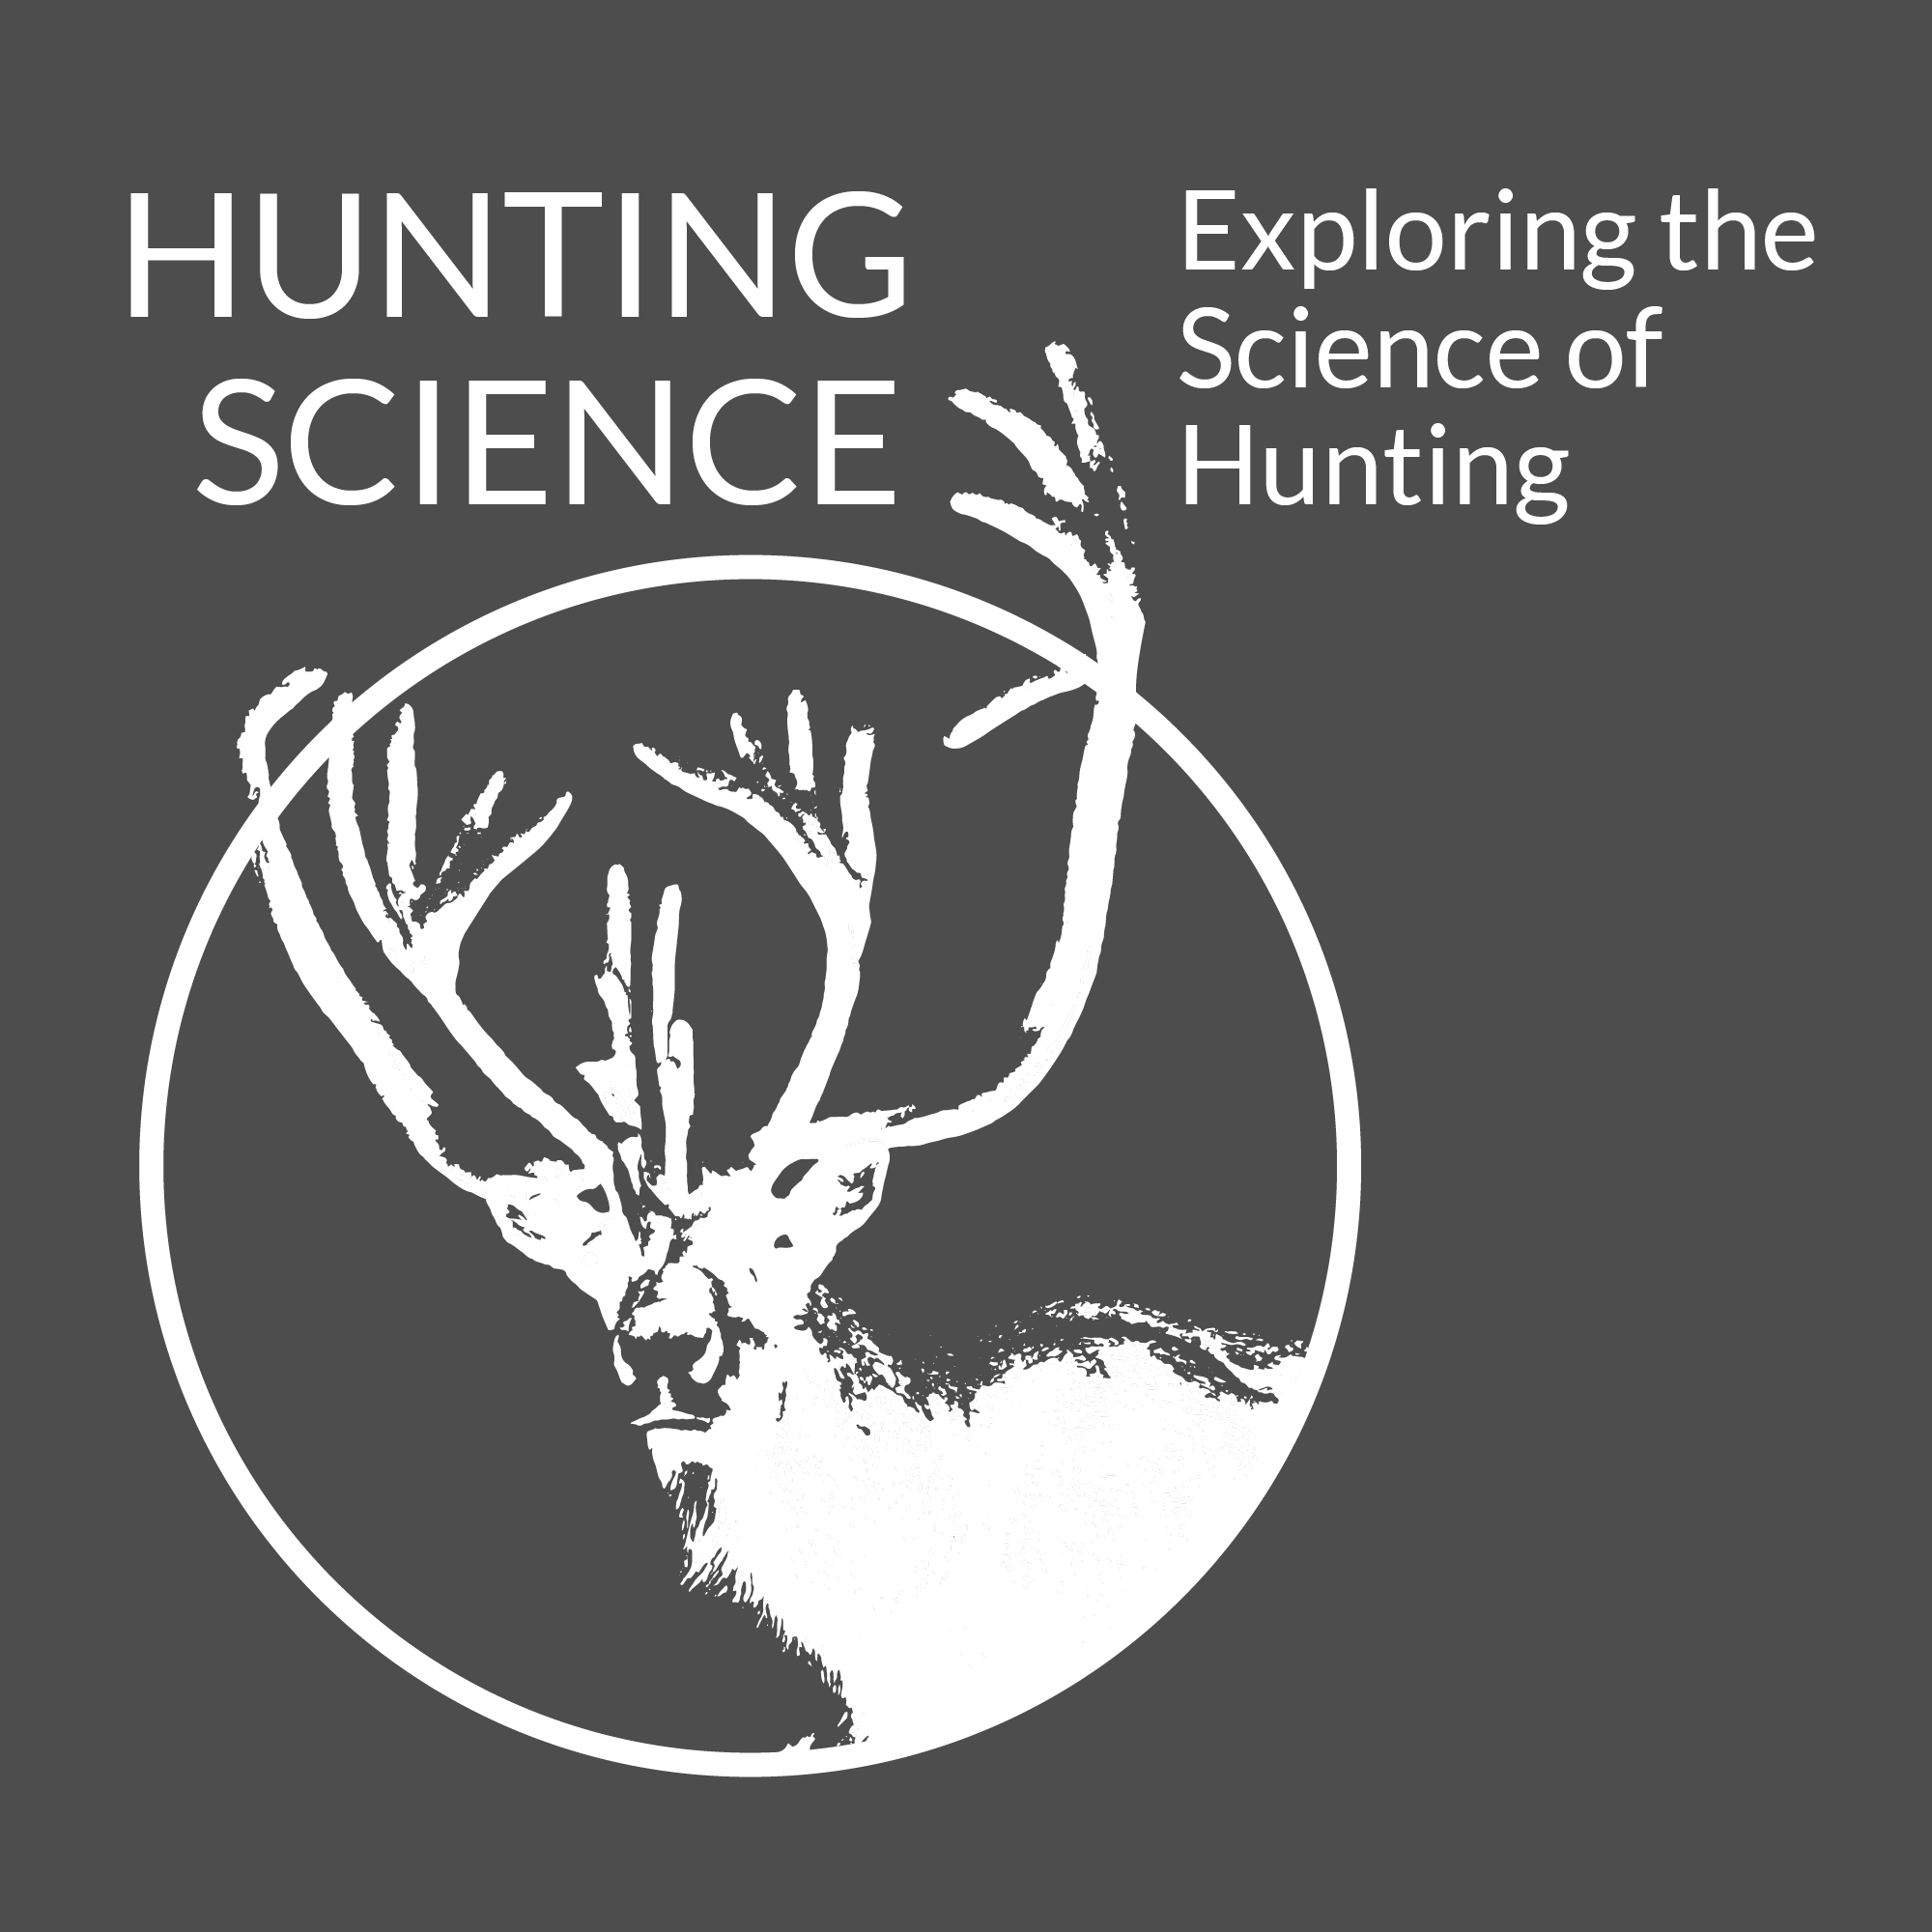 Hunting Science